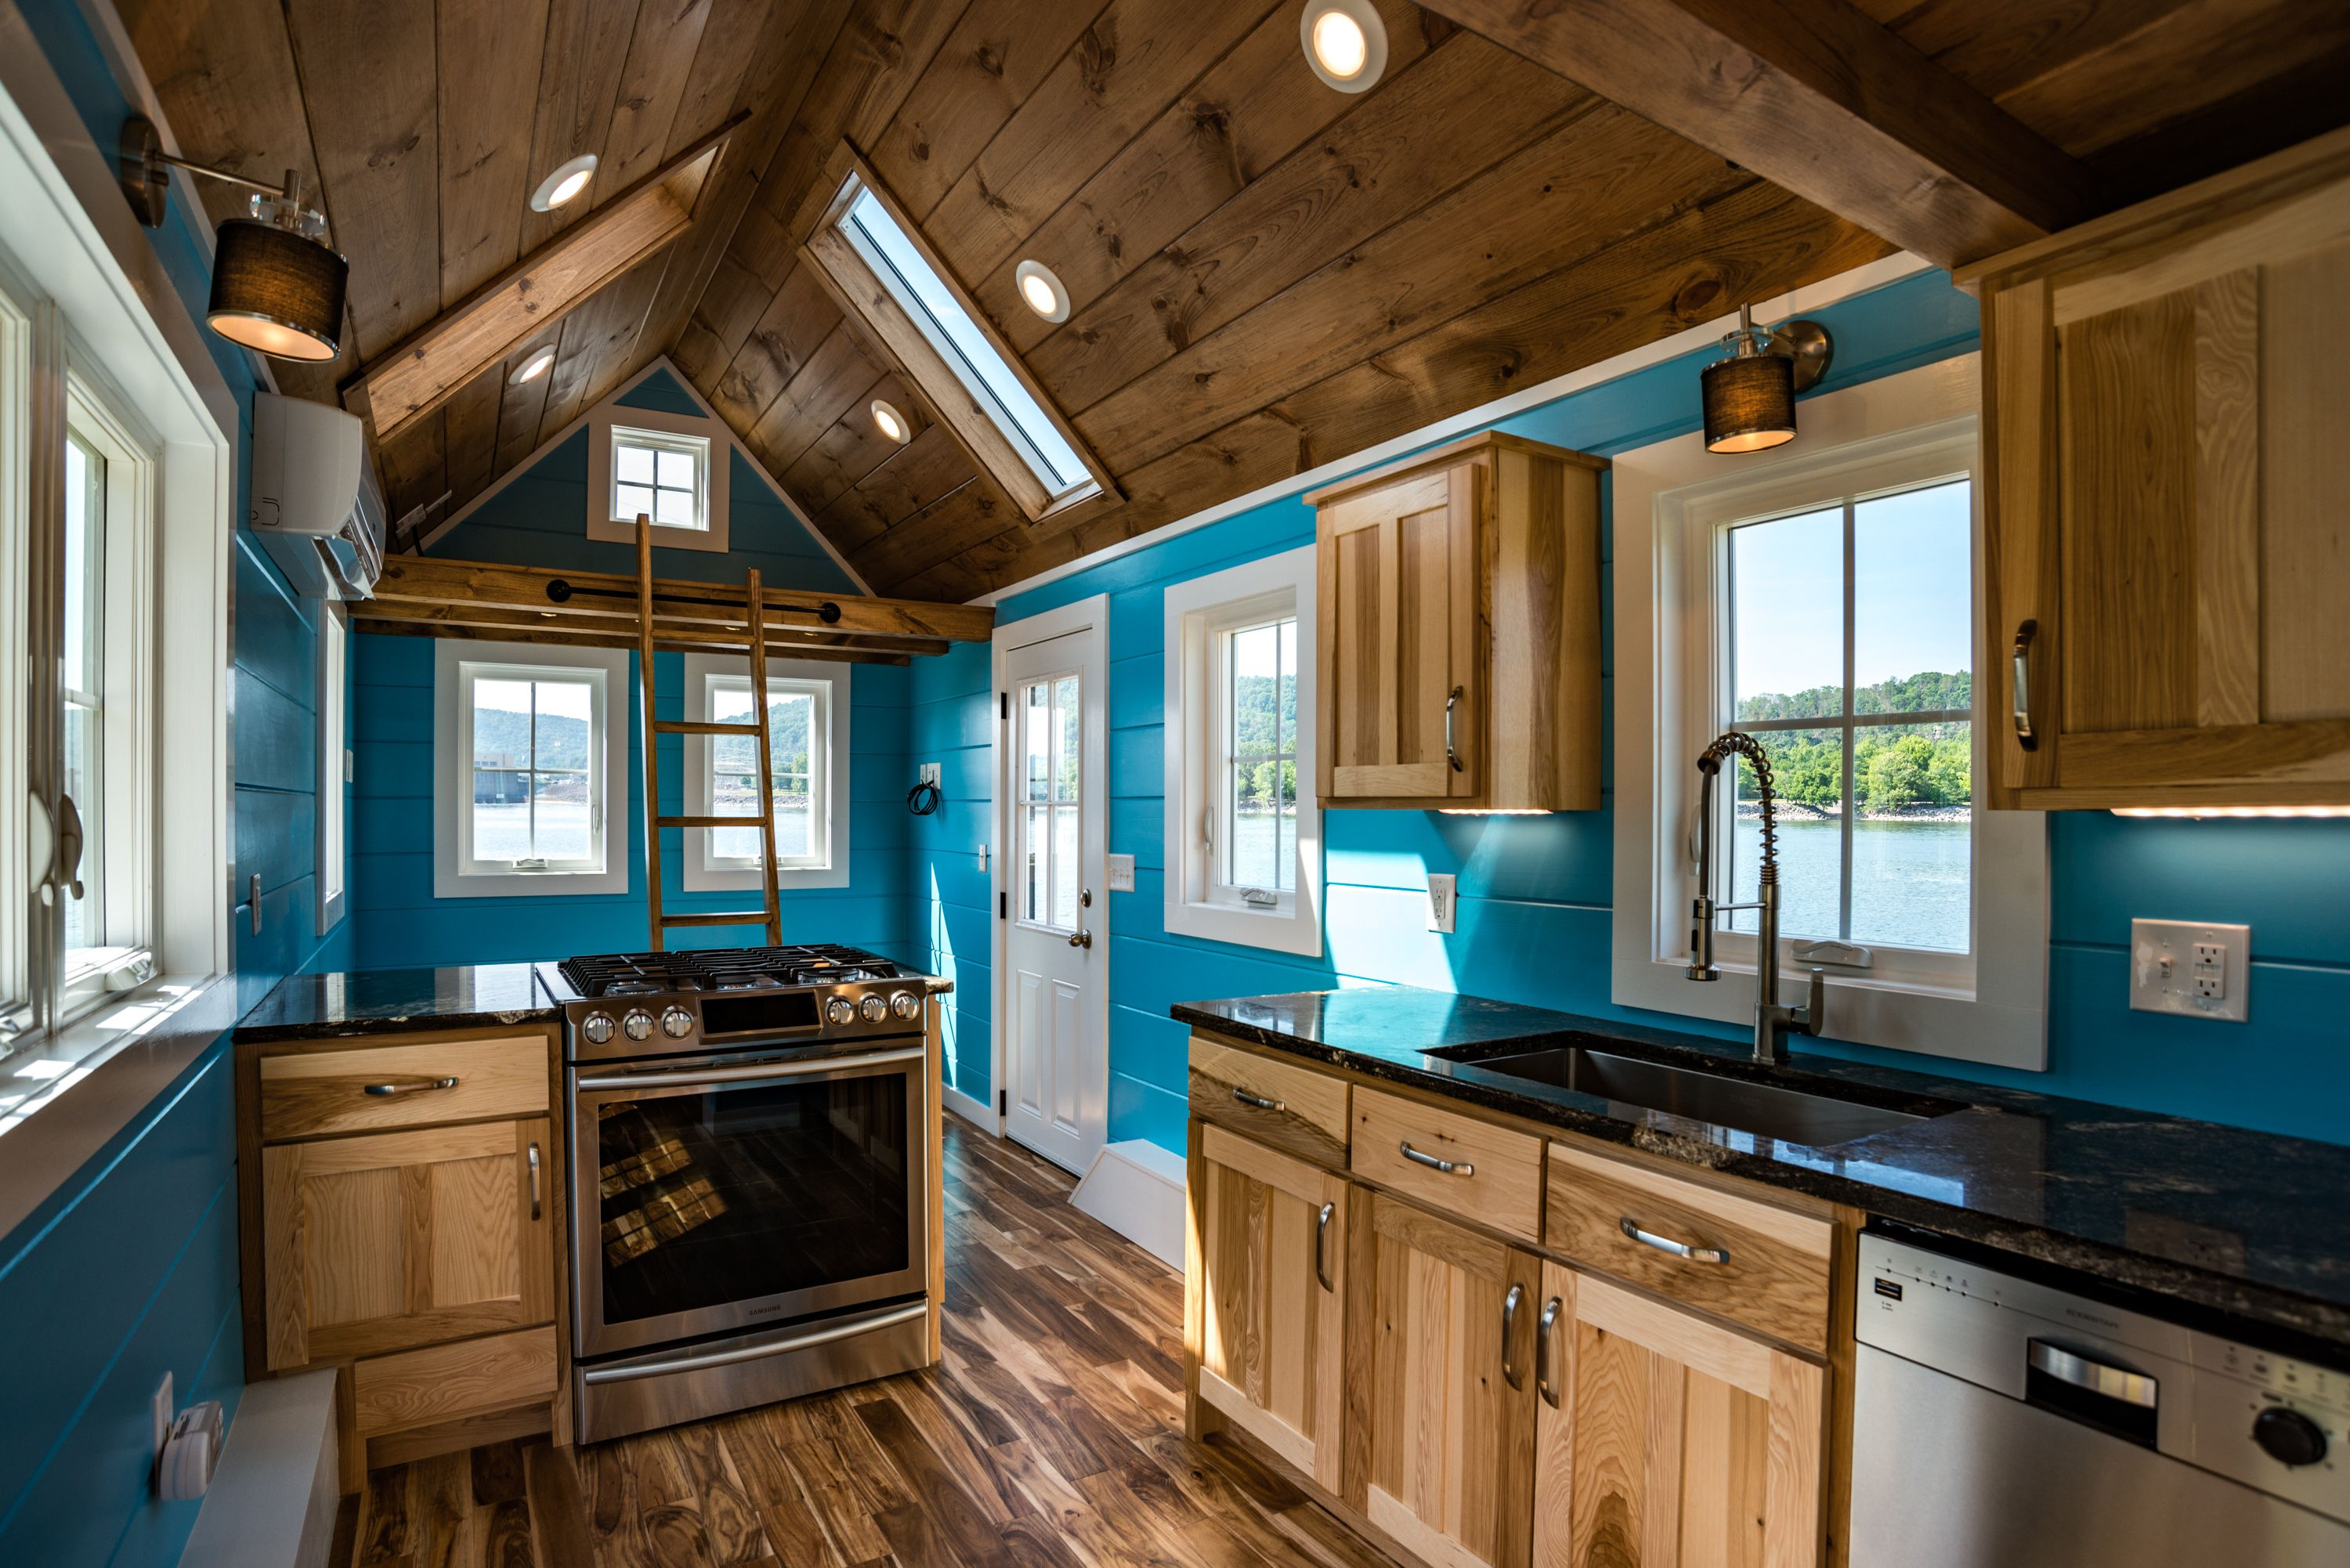 Beautiful kitchen in a custom tiny home by TimbercraftTinyHomes.com ...